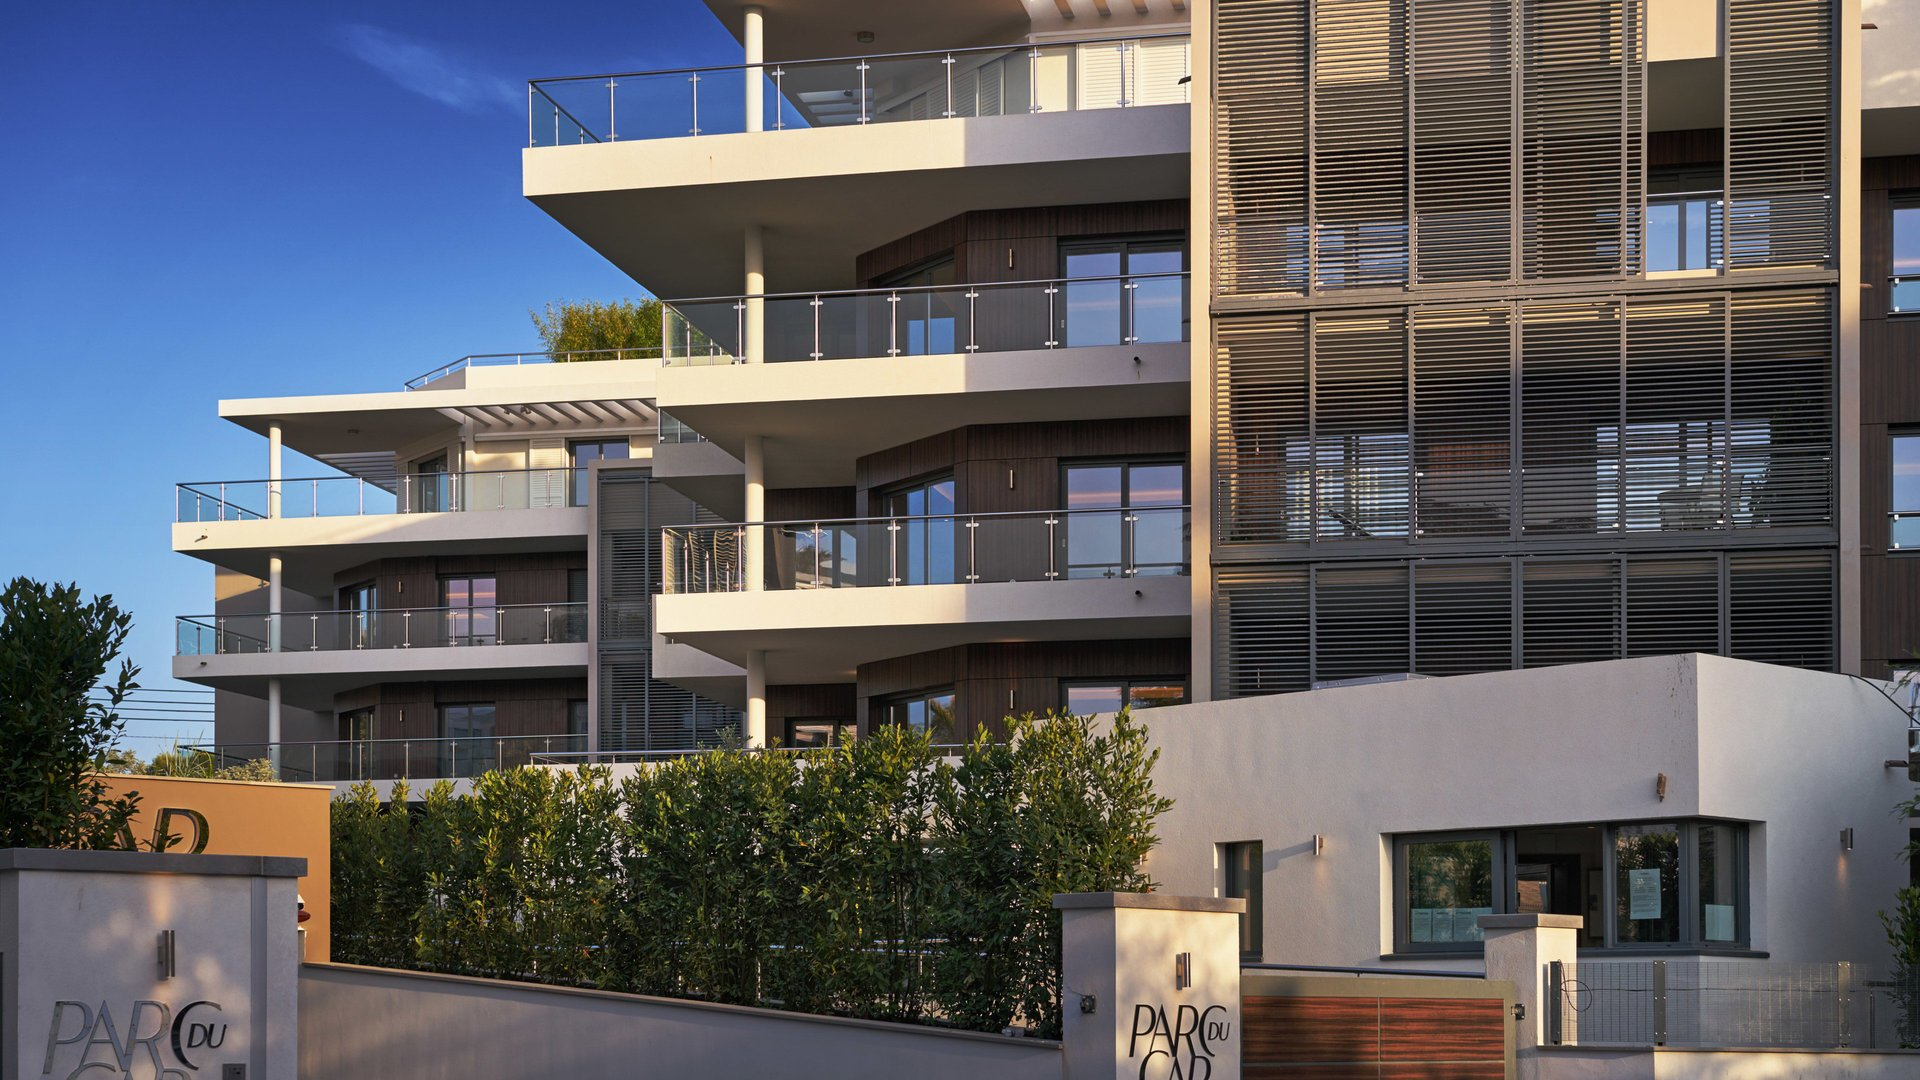 CAP D'ANTIBES -  New 2 bedroom apartment of 88m2 with large terraces in exceptional résidence